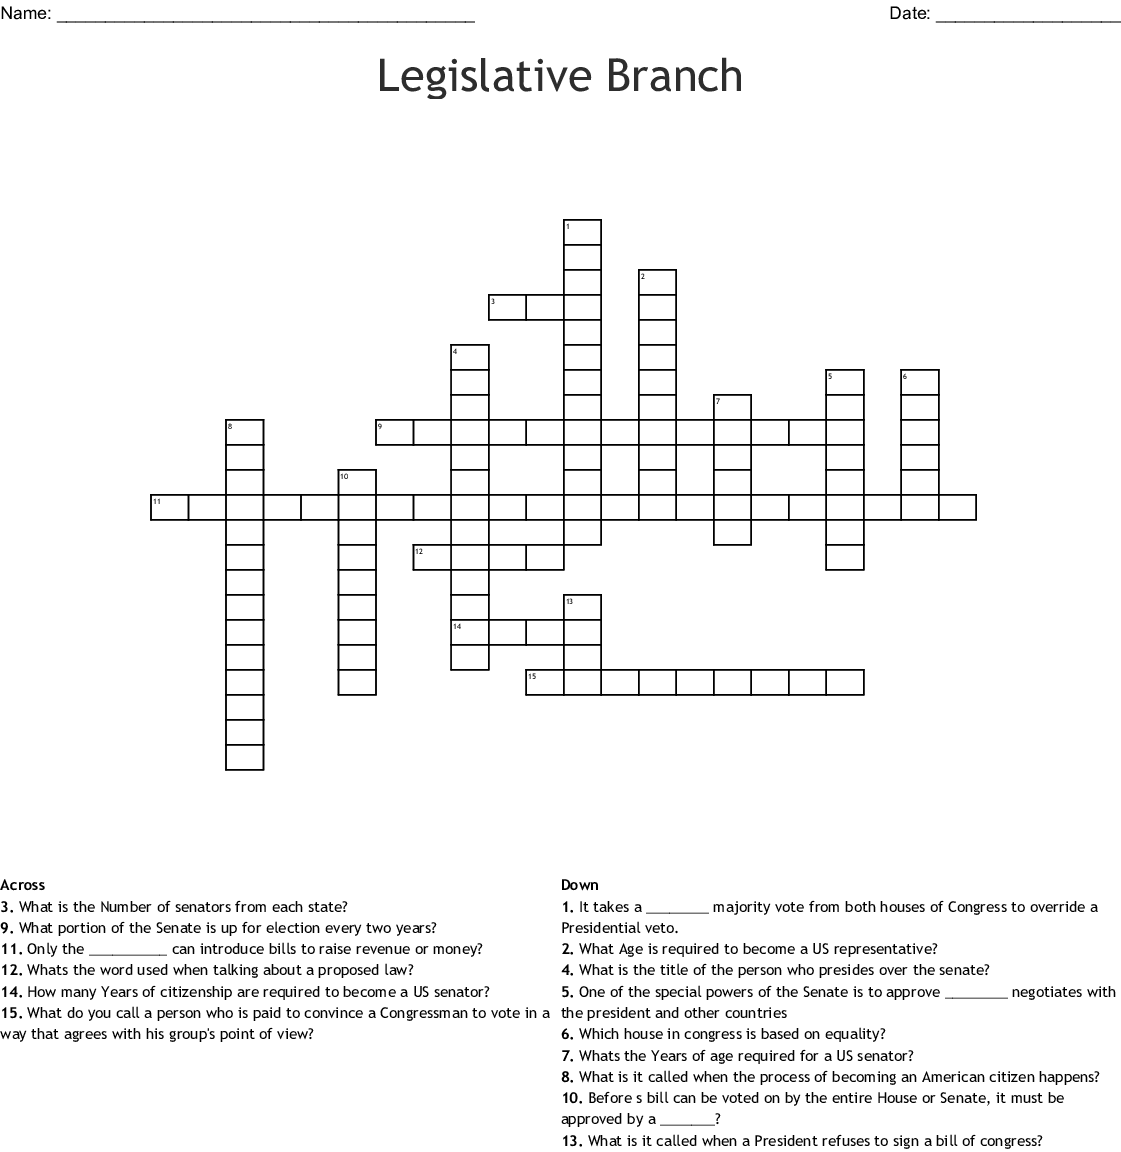 Legislative Branch Crossword Puzzle - WordMint